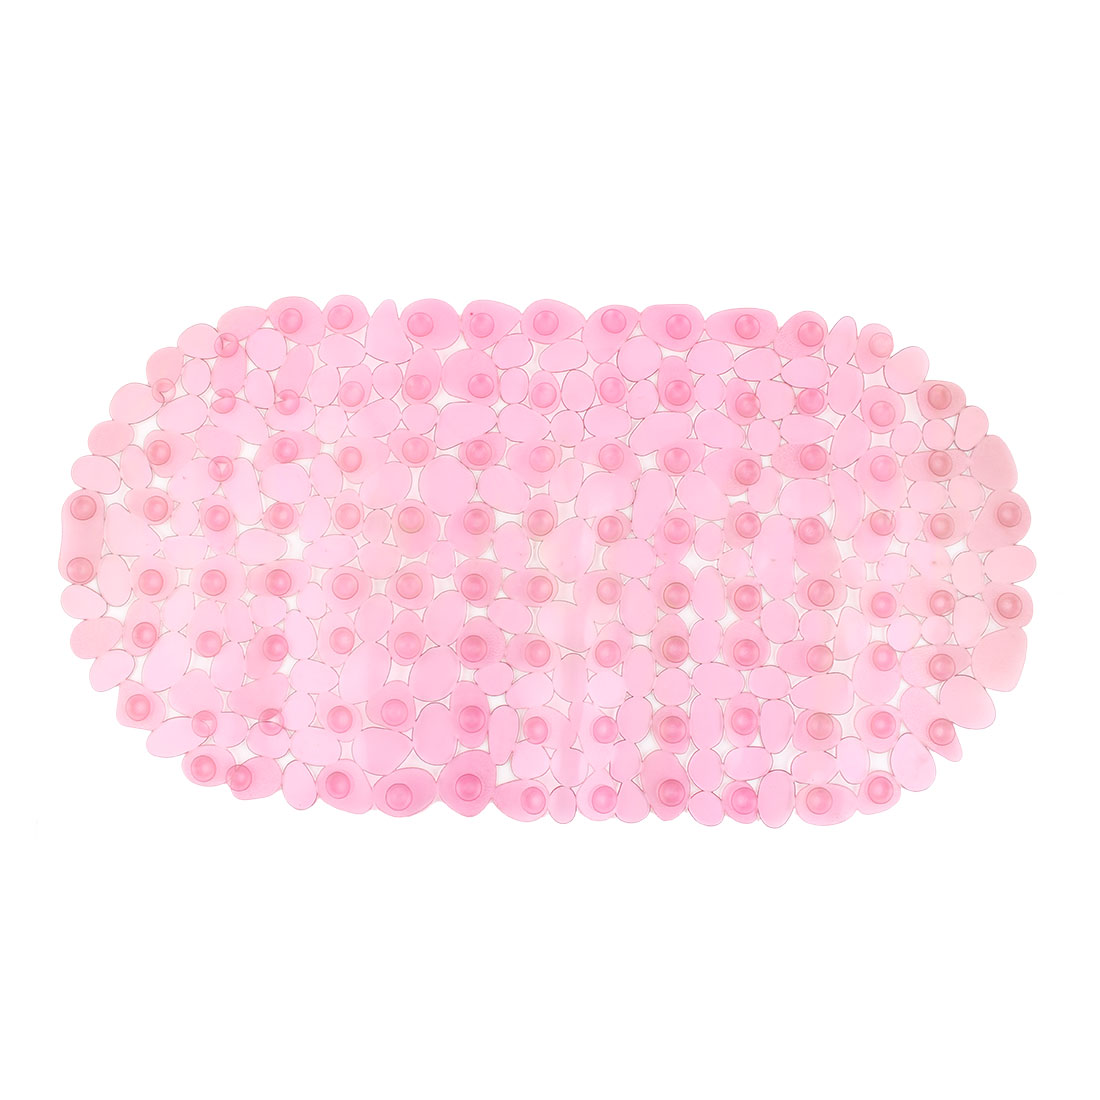 Shower Room PVC Oval Shape Nonslip Anti-skid Suction Cup Non-slip Mat Dark Pink